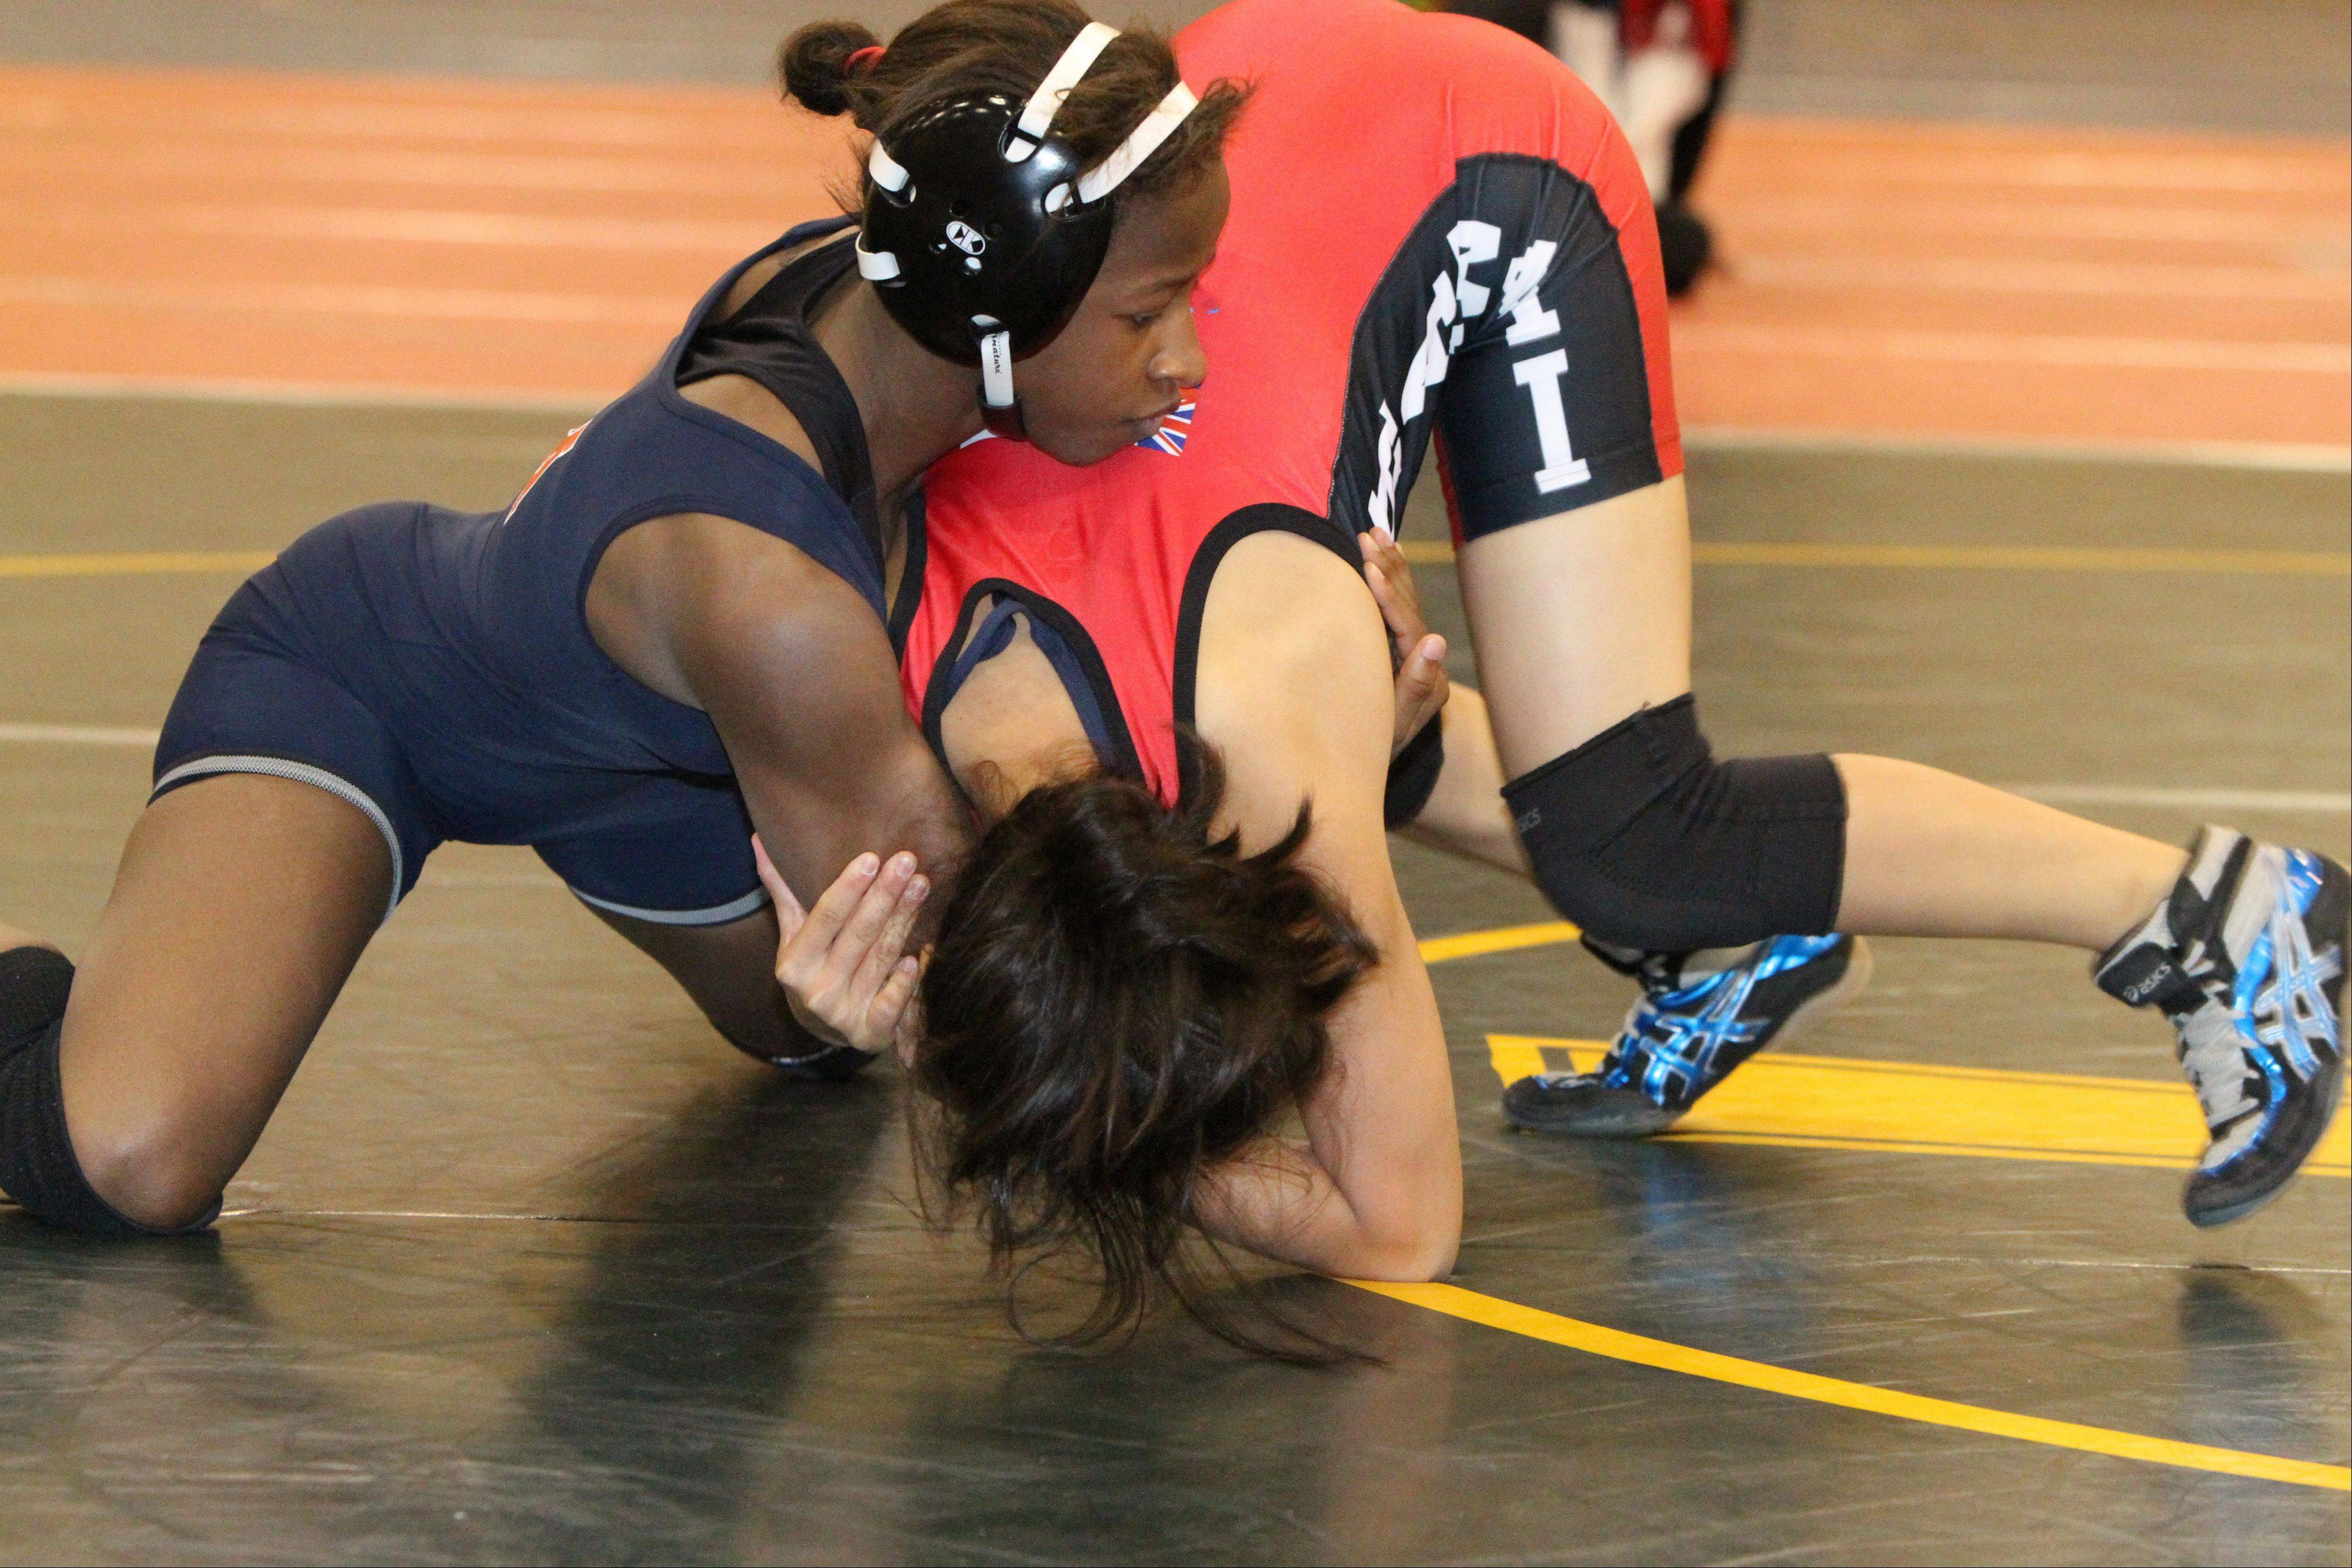 Erin Golston, left, takes control in her match against Allene Somera of Hawaii at the Body Bar Women's FILA Junior National Championships in Kissimmee, Fla. Golston won that round and continued on to win the May tournament. She's competing this week in the Junior World Championships in Romania.